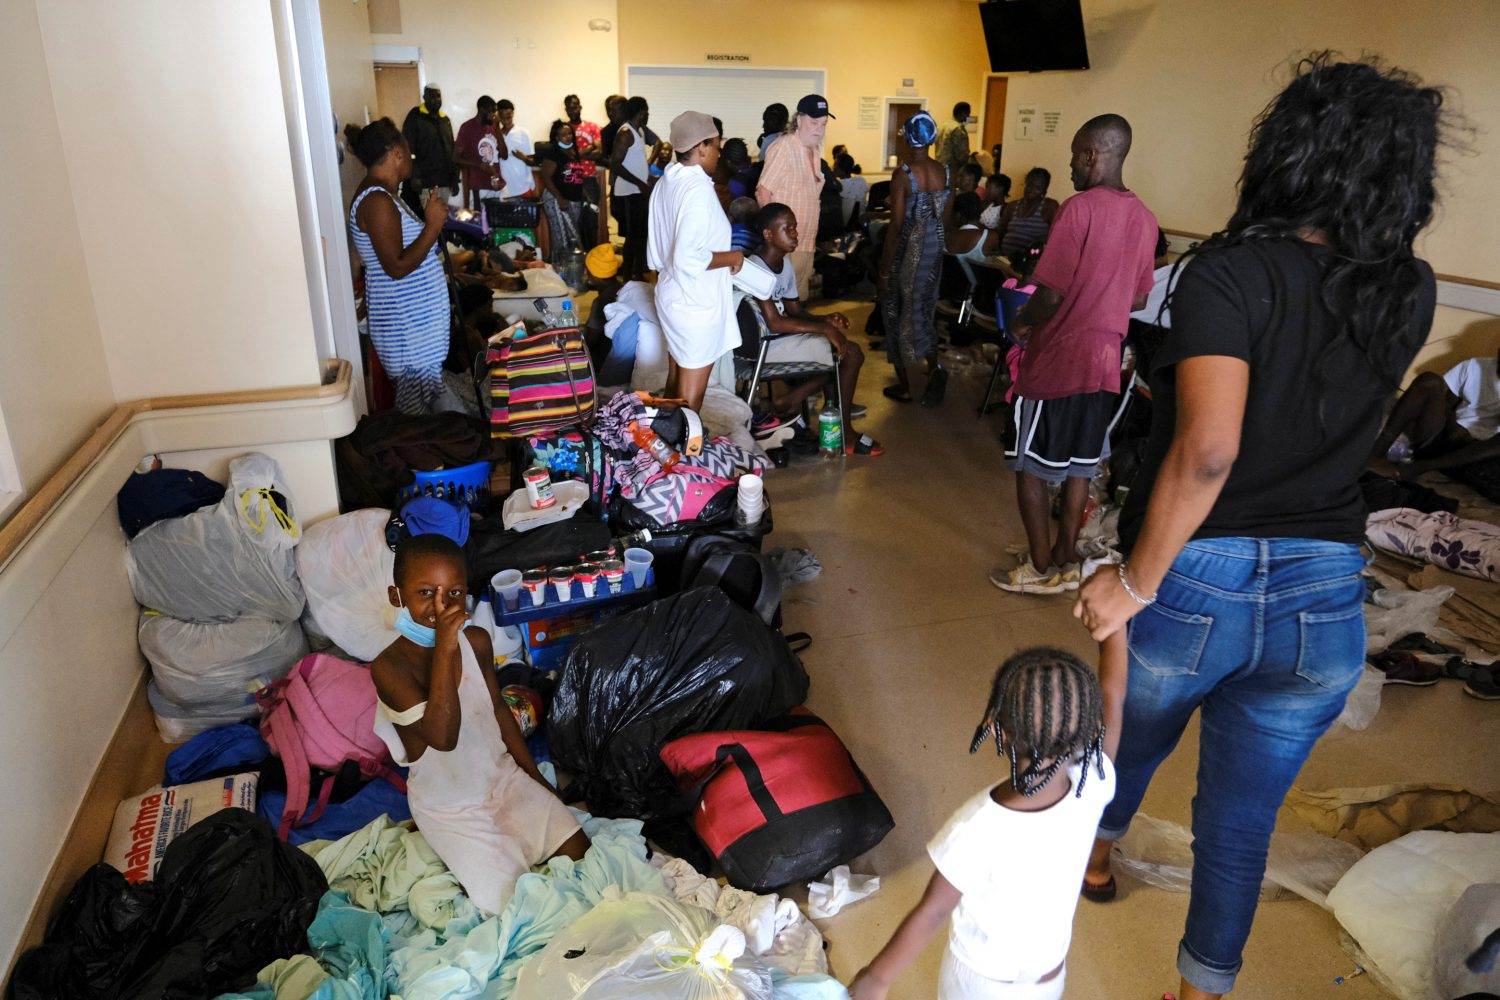 Patients and their families crowd the entrance of the Marsh Harbour Medical Clinic in the aftermath of Hurricane Dorian on the Great Abaco island town of Marsh Harbour, Bahamas, September 4, 2019. REUTERS/Dante Carrer